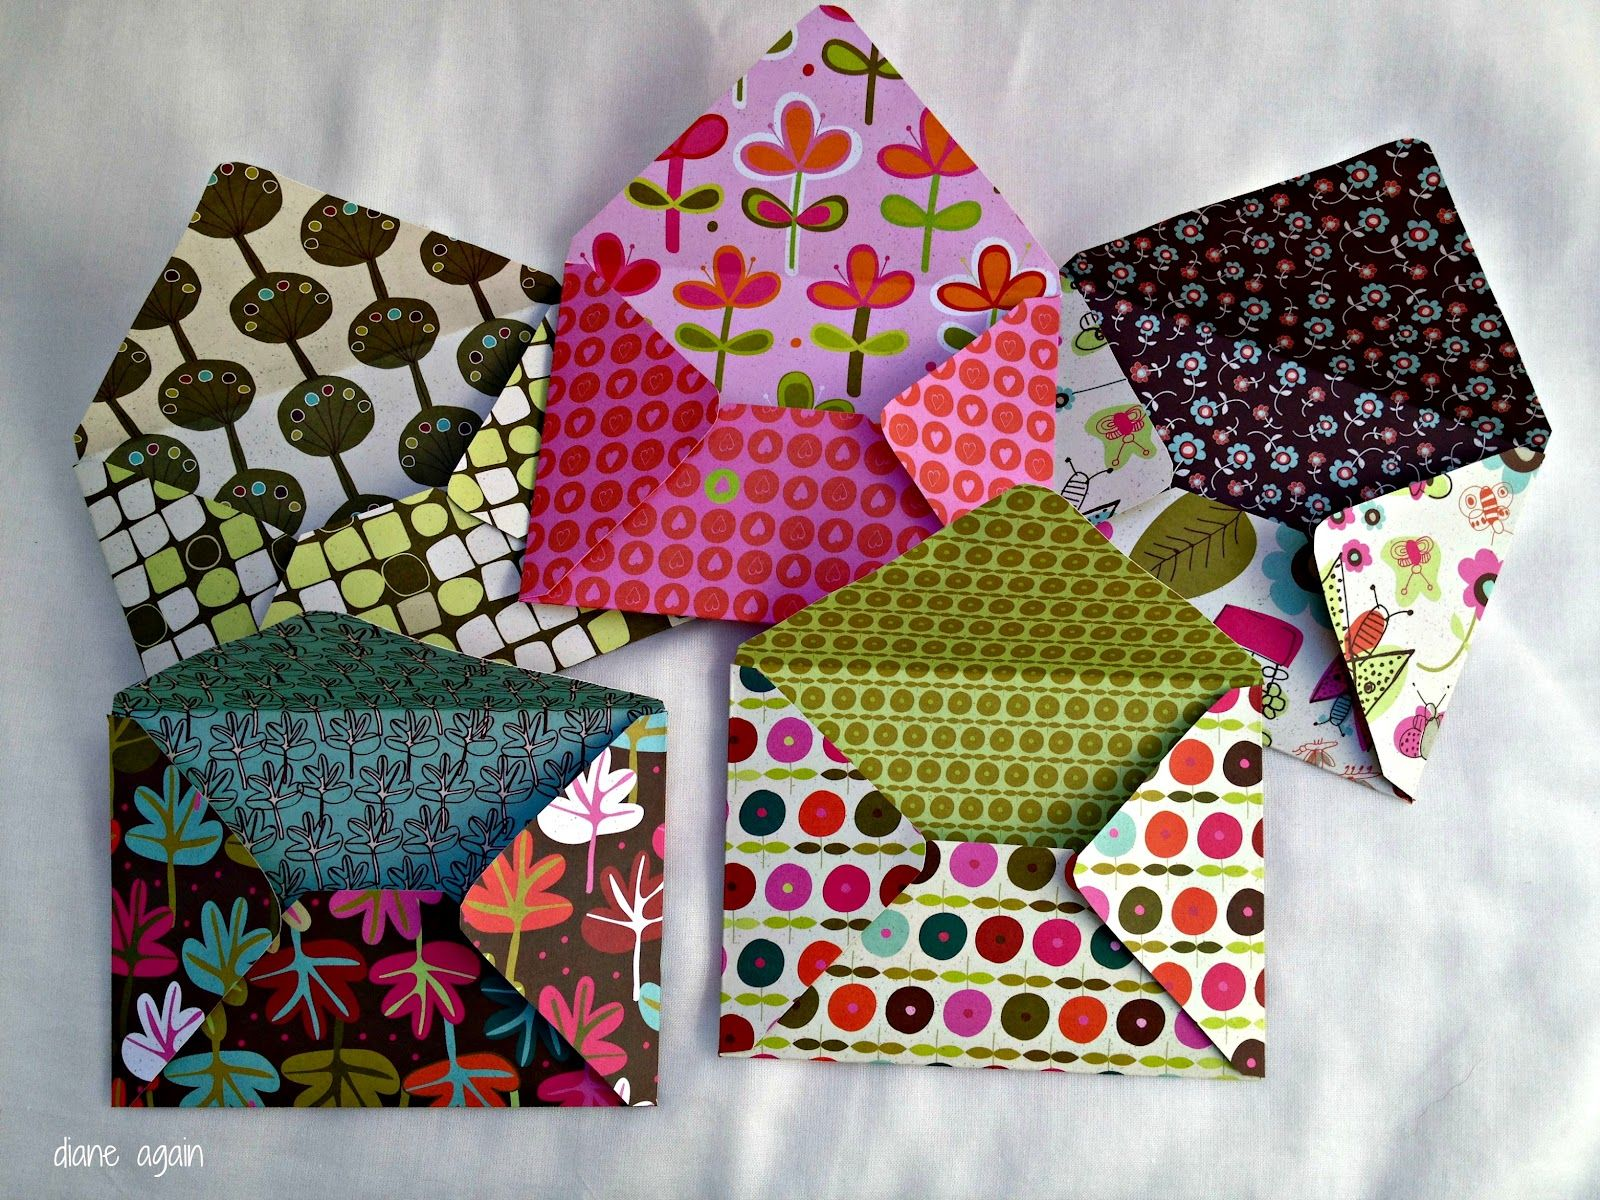 How to make scrapbook about yourself - 1000 Images About Card Ideas On Pinterest Burlap Bunting Gift Tags And Easy Cards